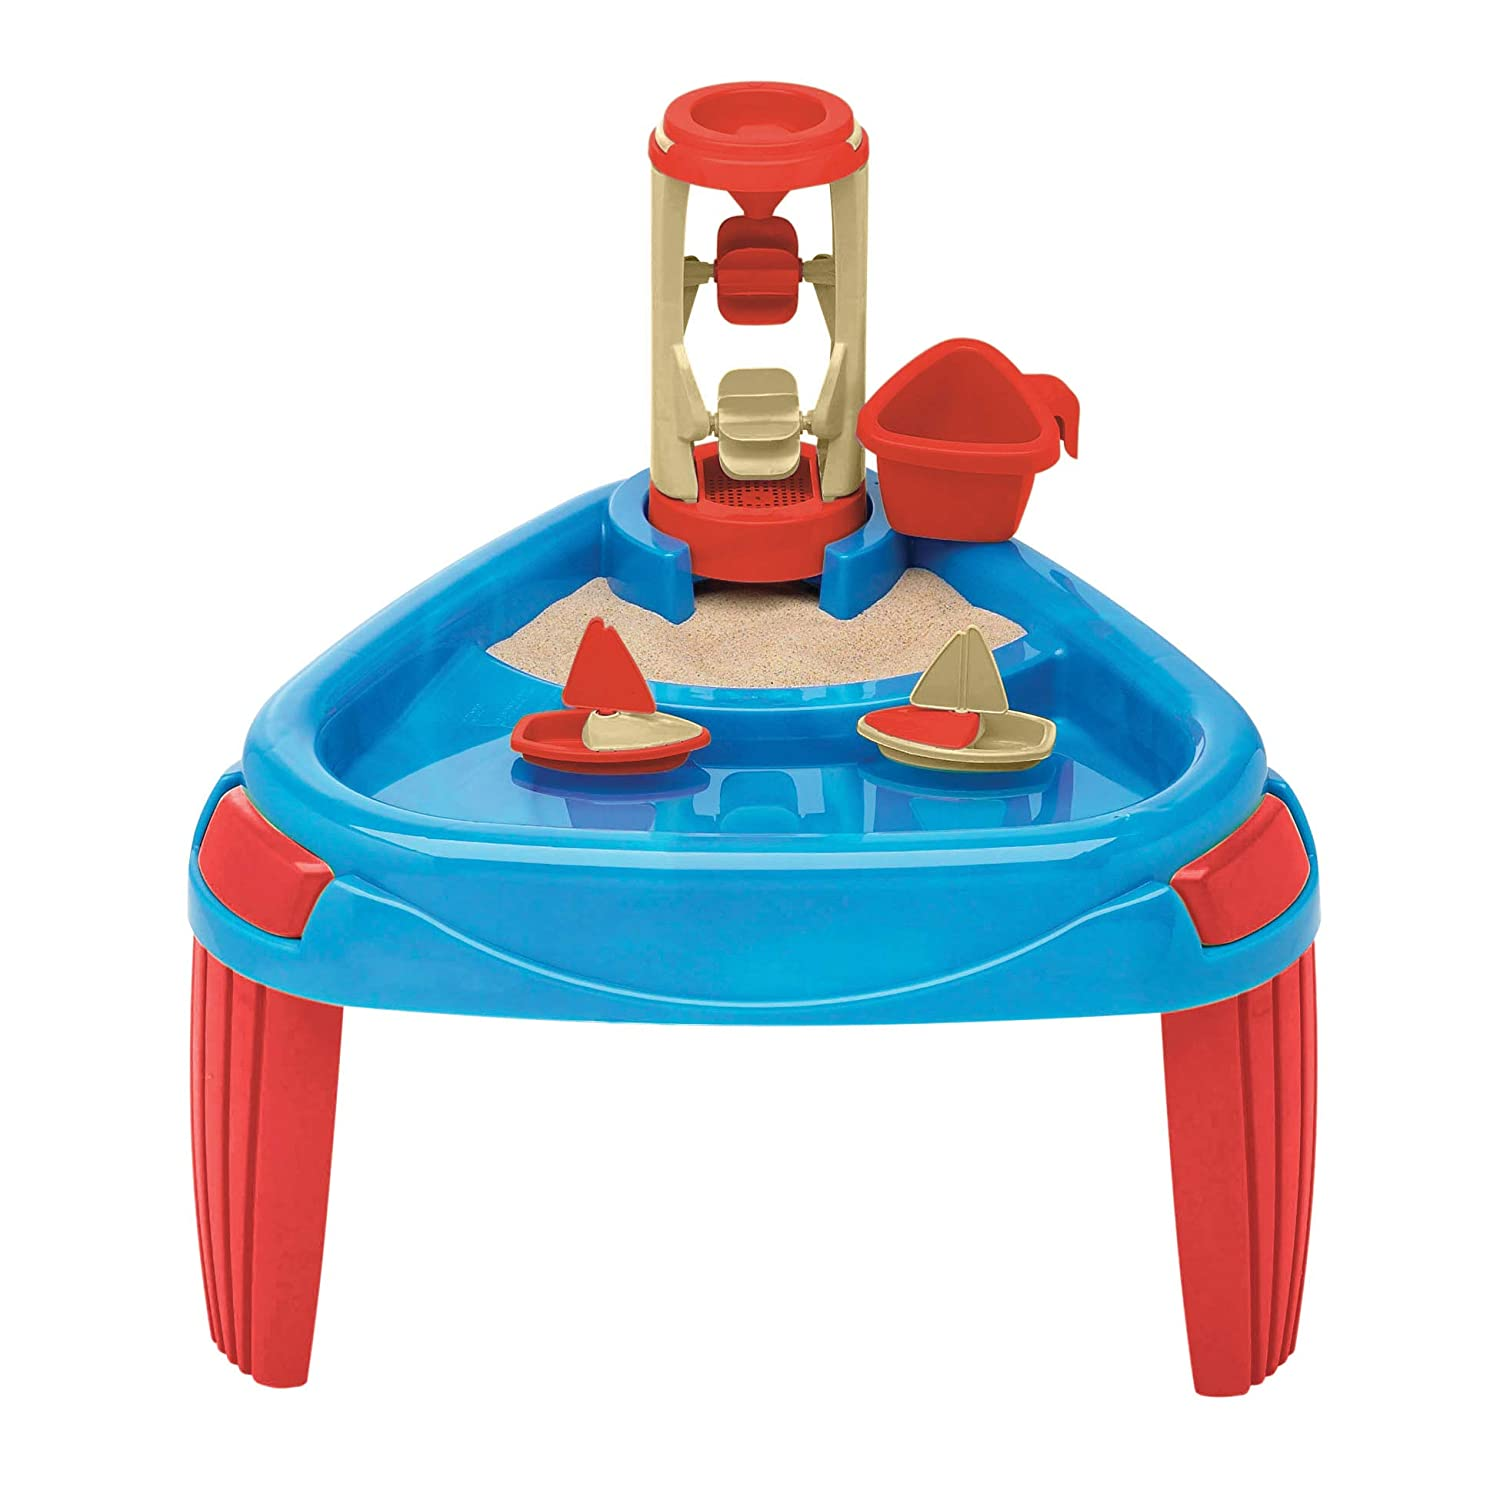 Top 11 Best Water Tables for Kids and Toddlers Reviews in 2021 16